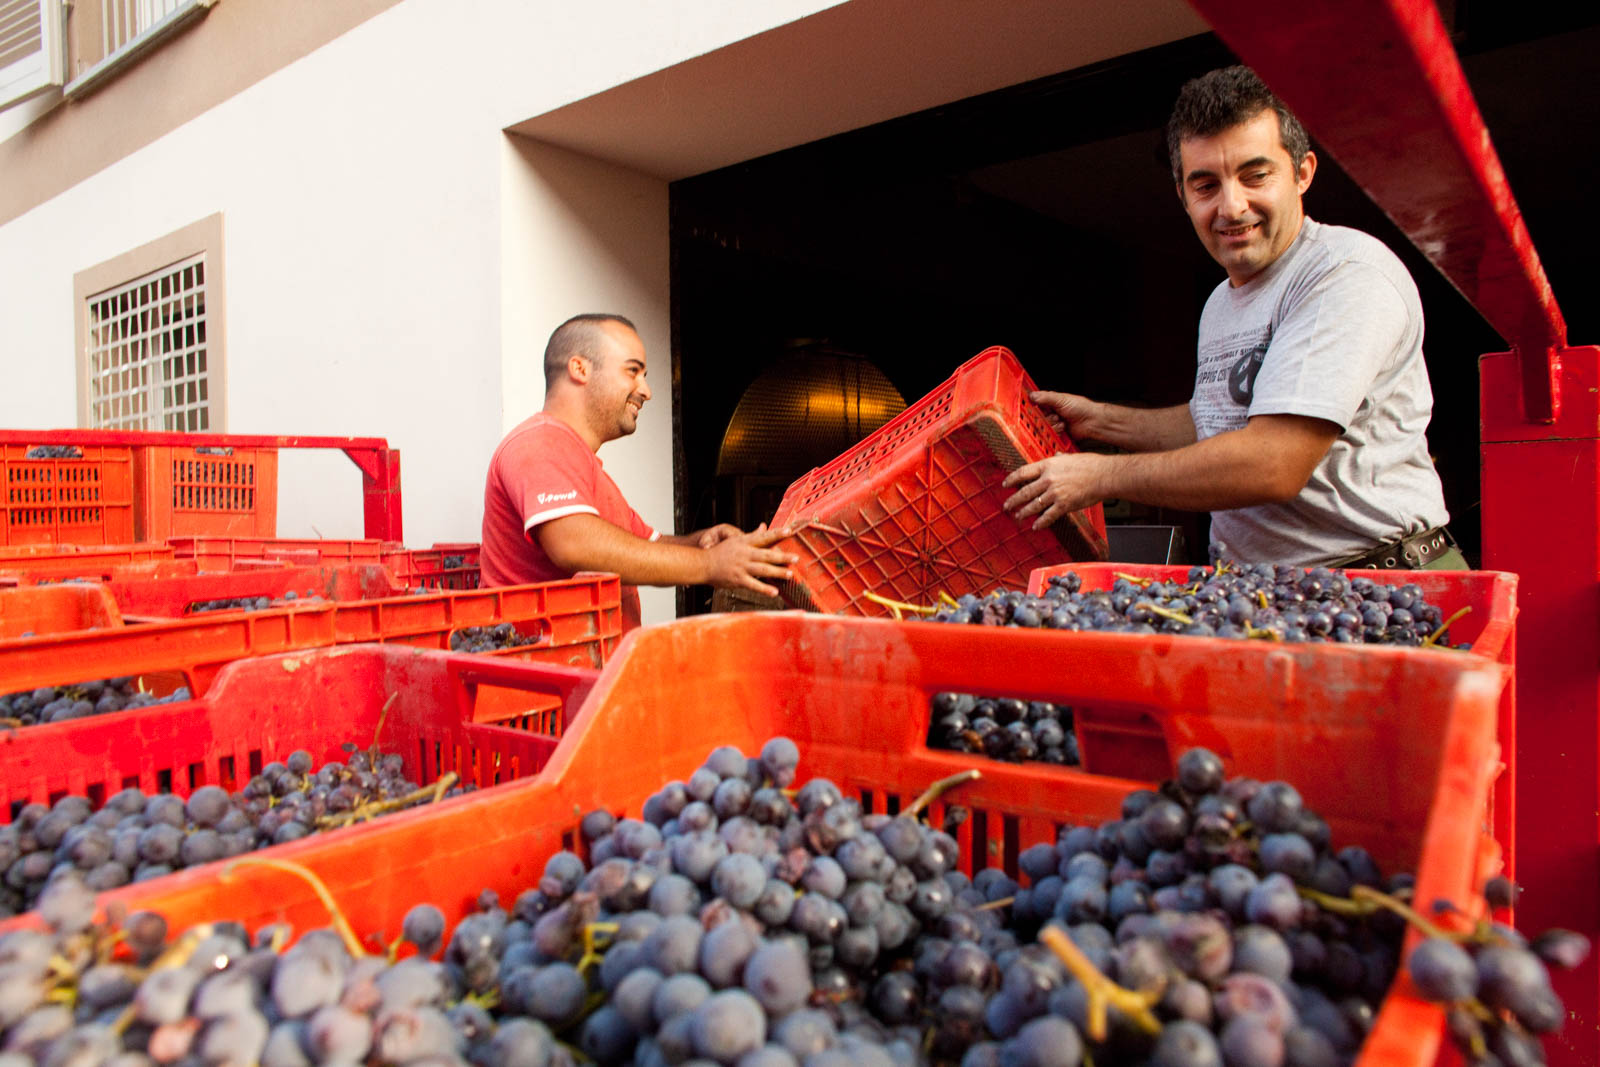 Grapes being harvested in Barolo, Italy. ©Kevin Day/Tanager Photography